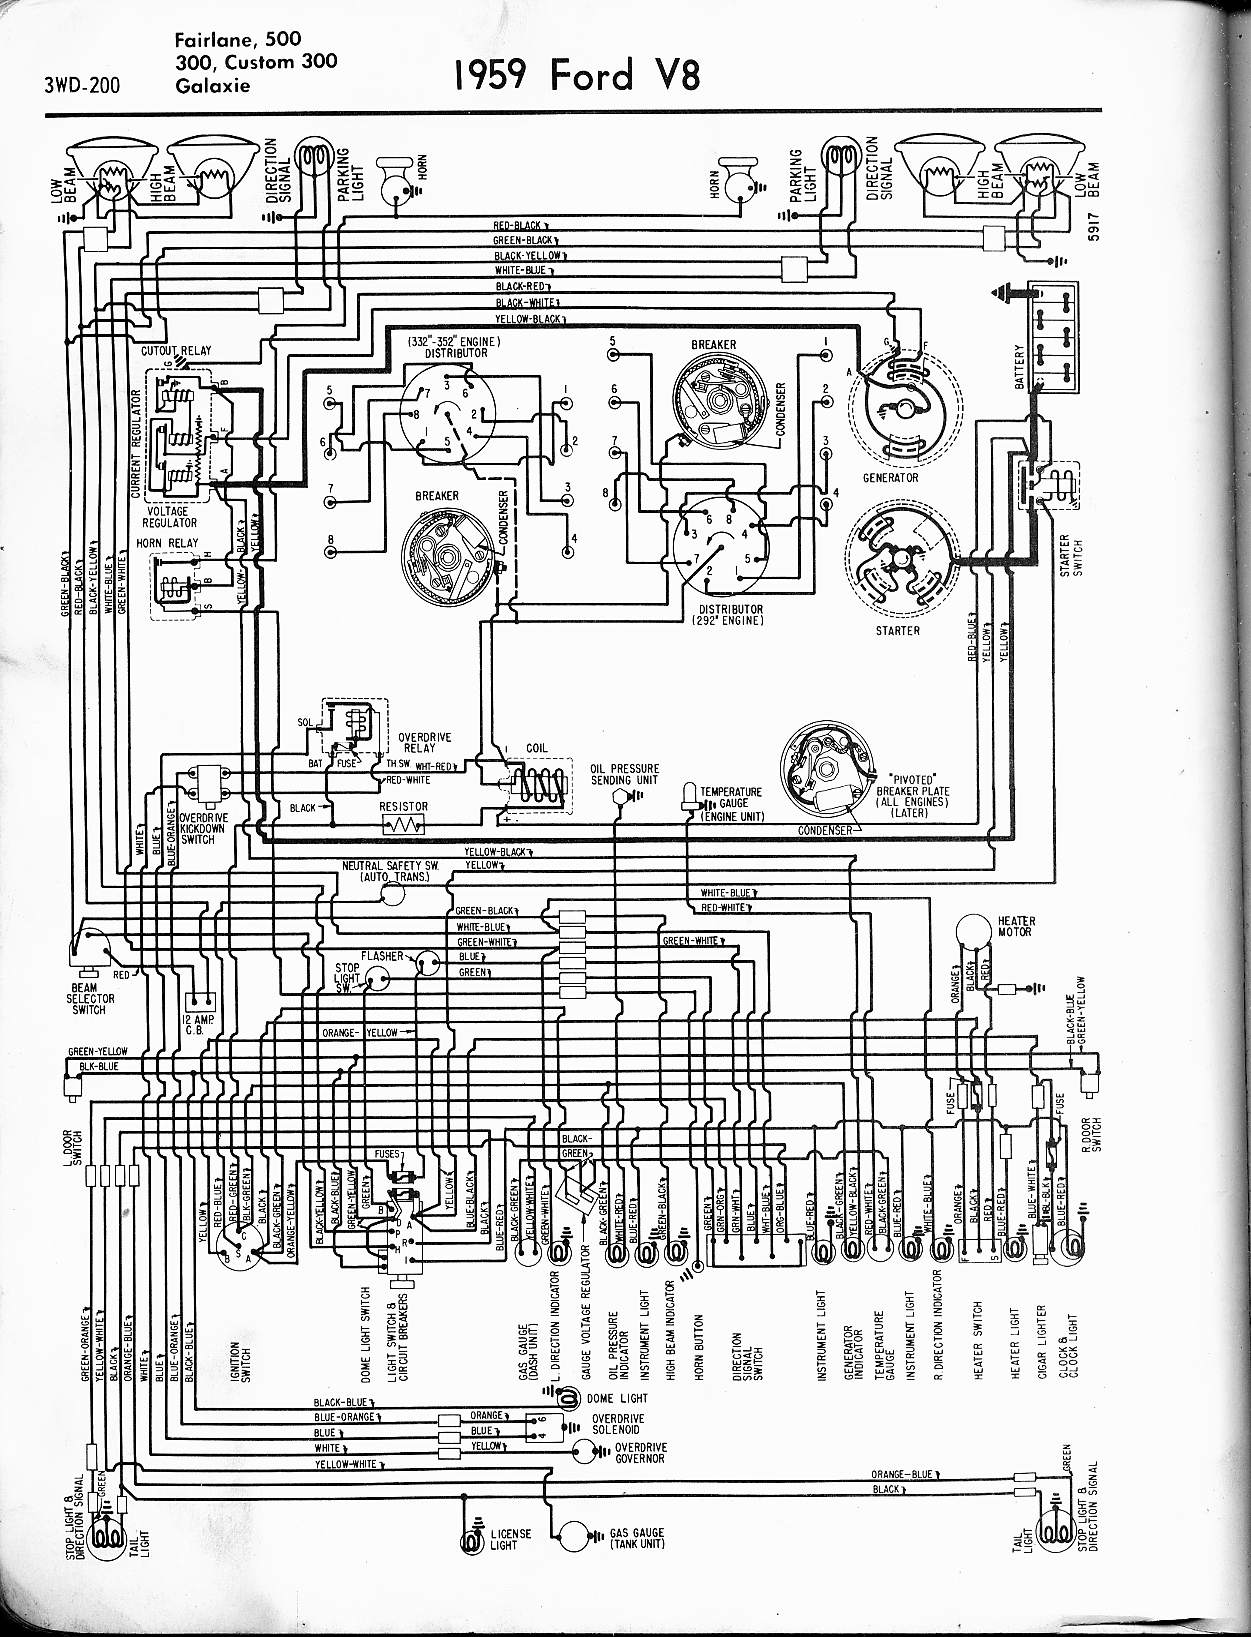 MWire5765 200 57 65 ford wiring diagrams ford wiring schematics at readyjetset.co